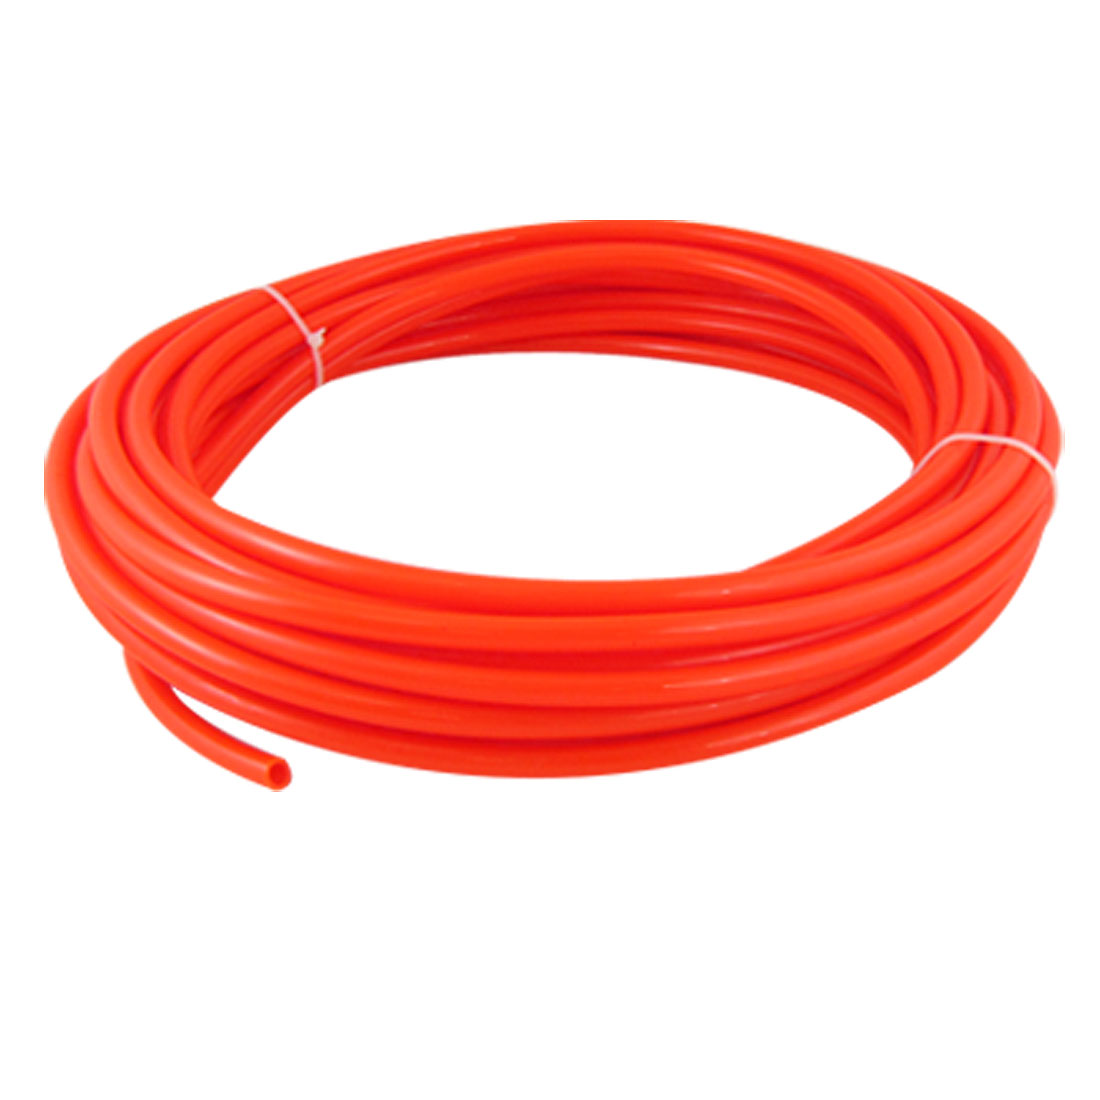 Orange Red 15M 49.2Ft 8mm OD 5mm ID Pneumatic PU Air Tube Hose